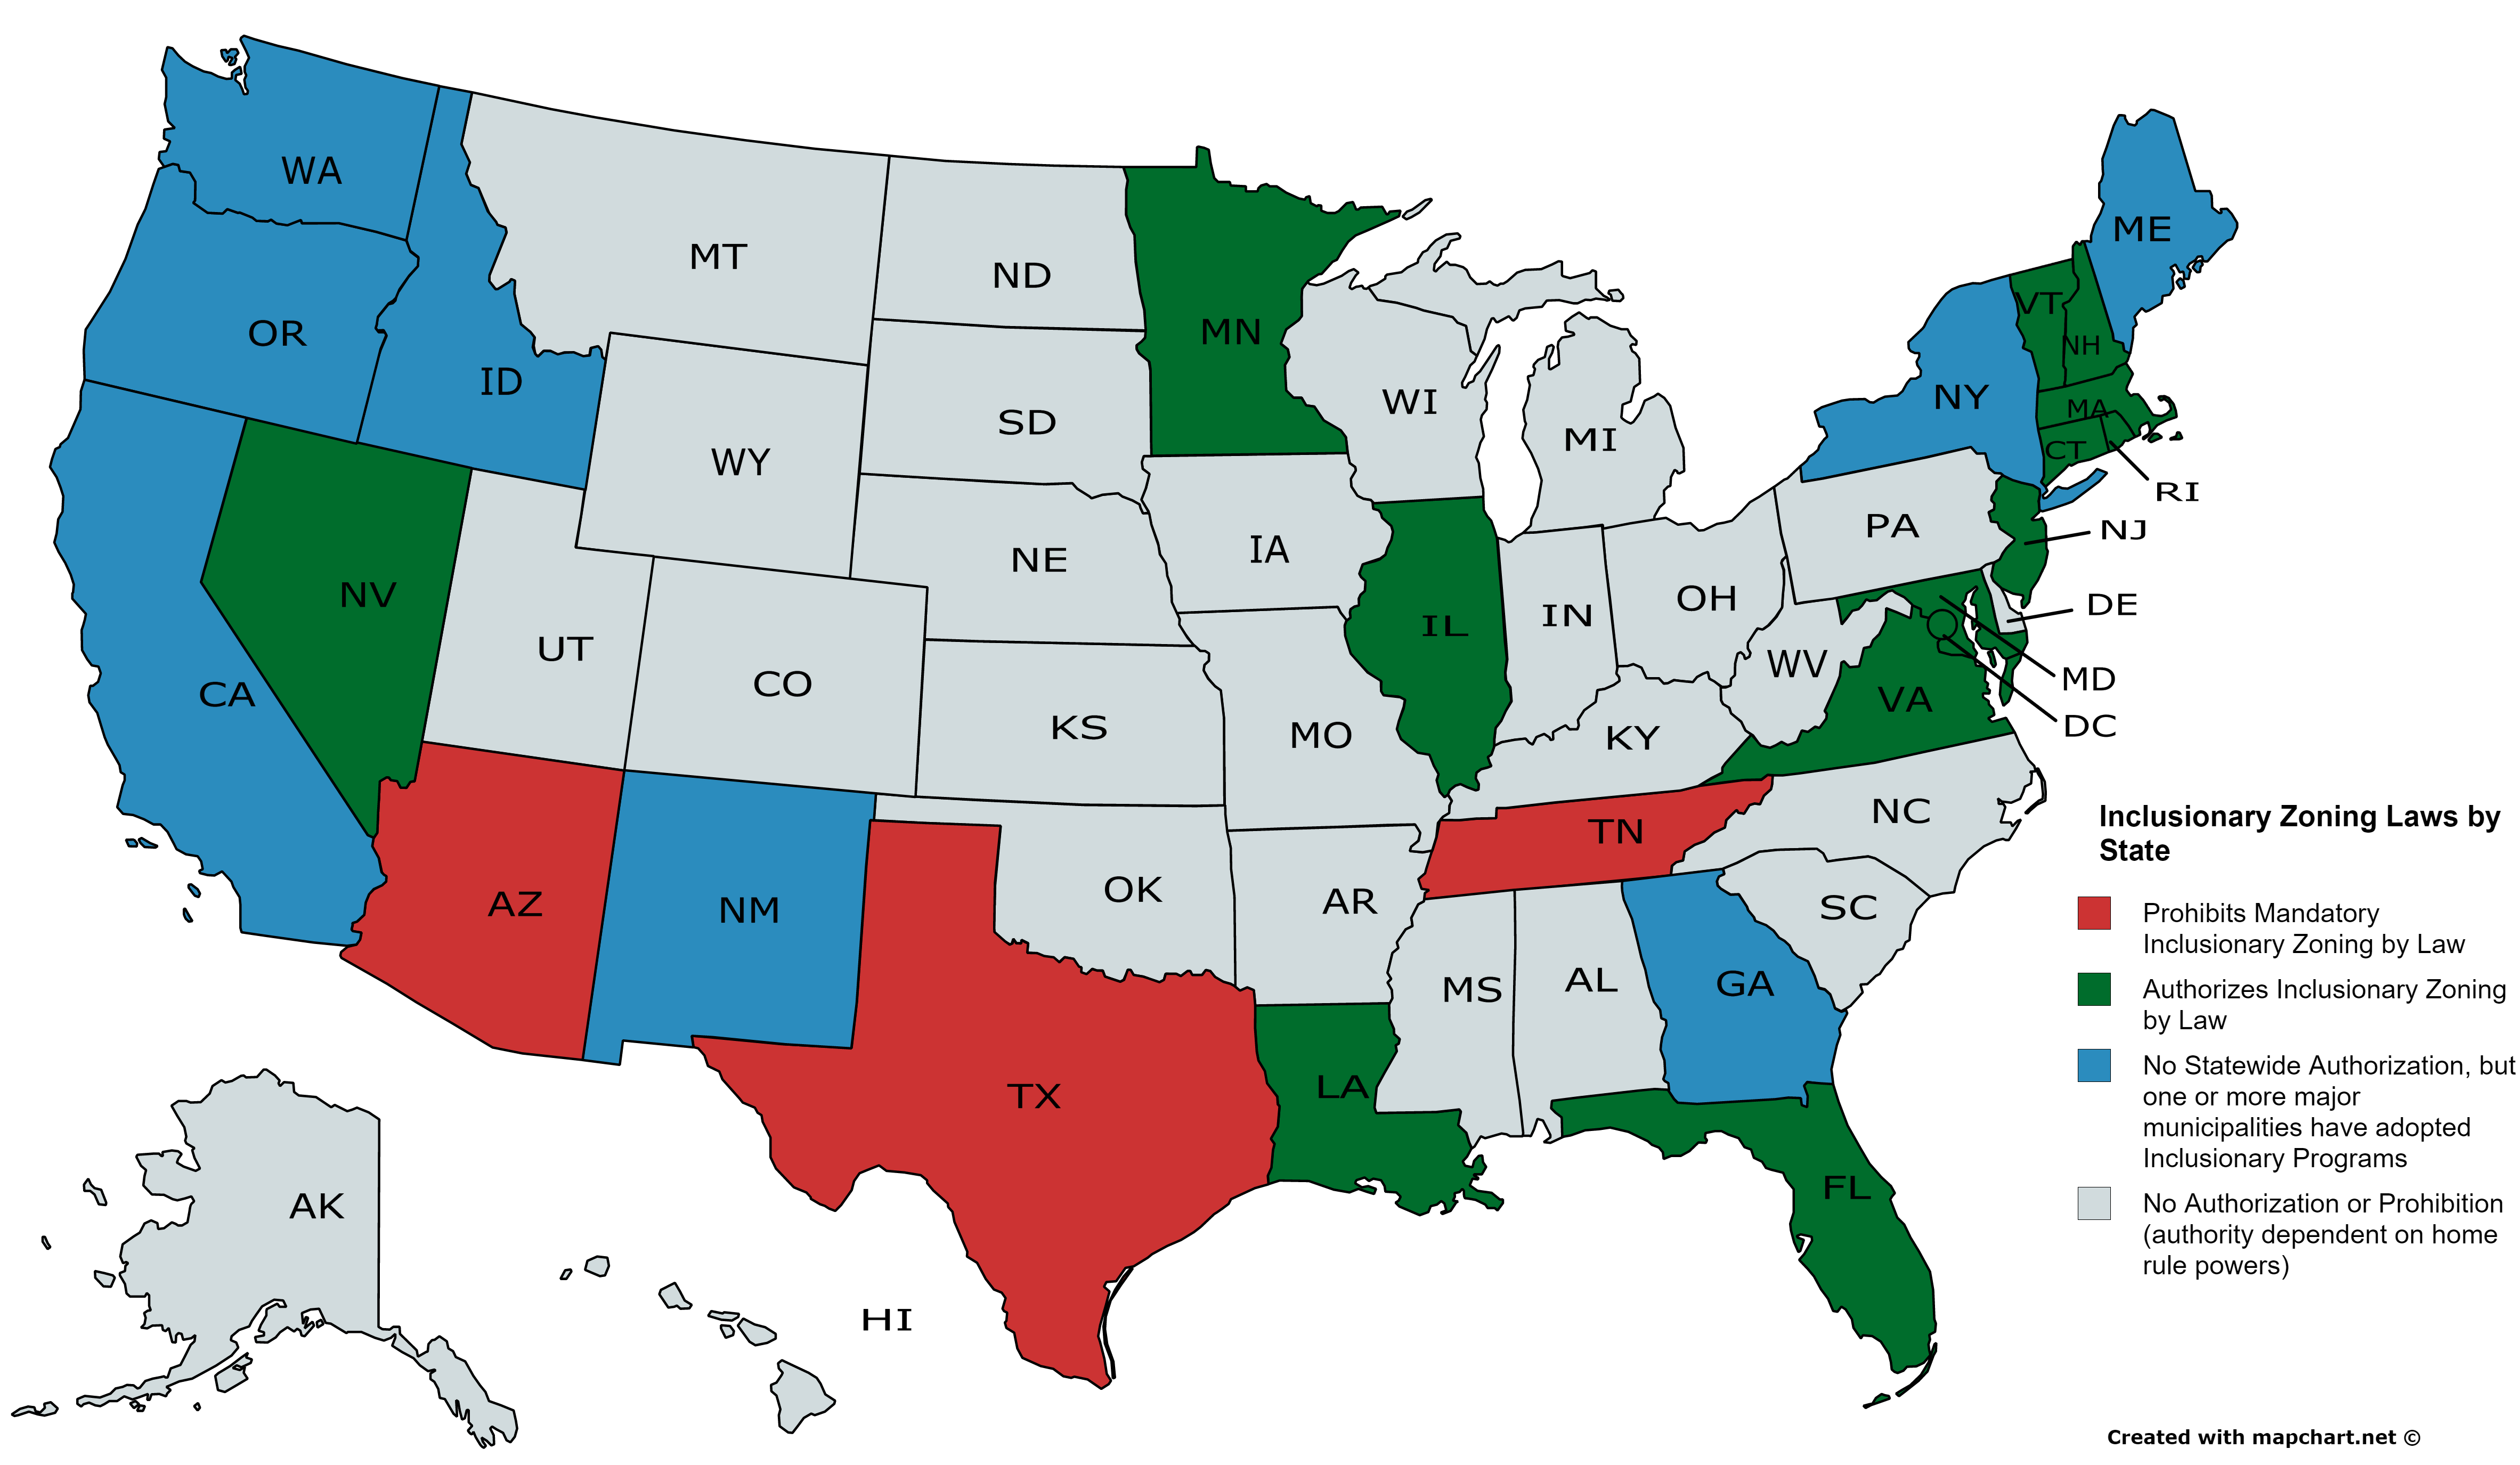 inclusionary-zoning-laws-by-state-1 - Inclusionary Housing